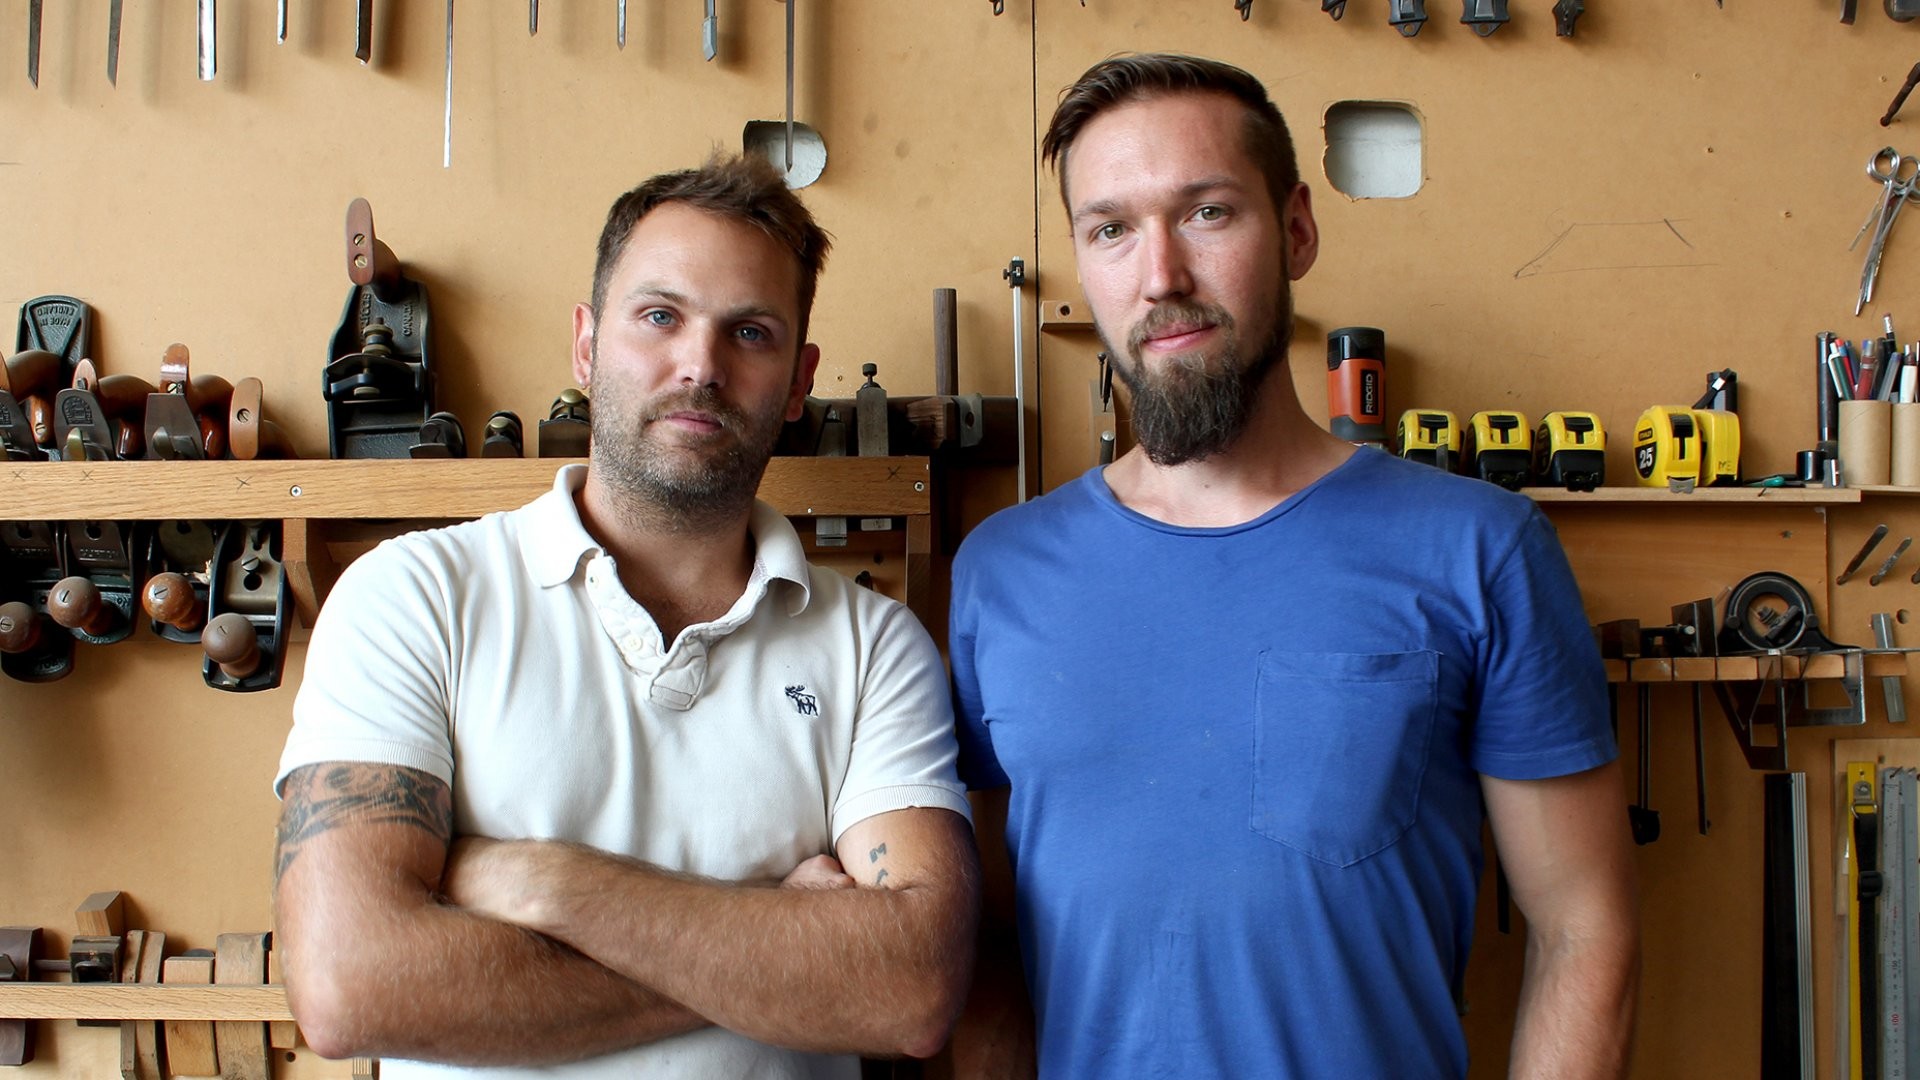 Co-founders Jason Horvath and Bill Hilgendorf launched Uhuru Design in 2004.